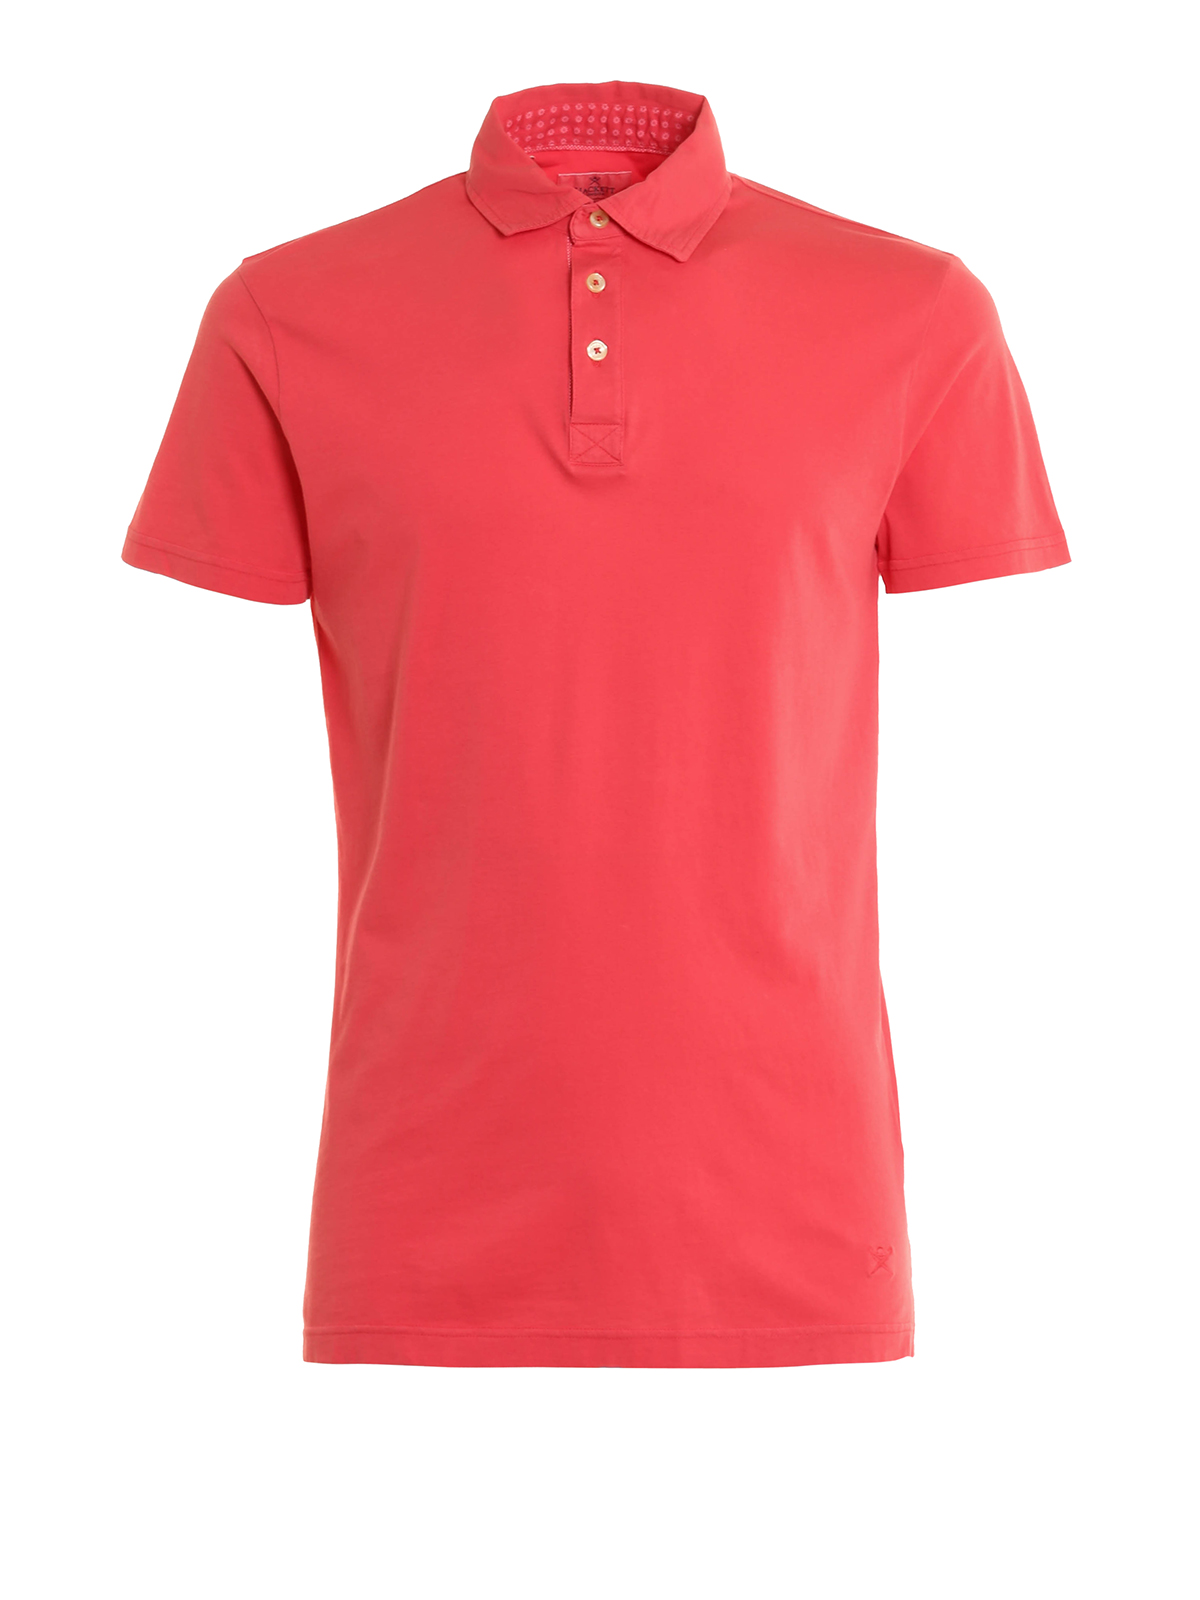 Wide selection of % cotton T-Shirts from leading brands. Wholesale pricing available for cotton tees.